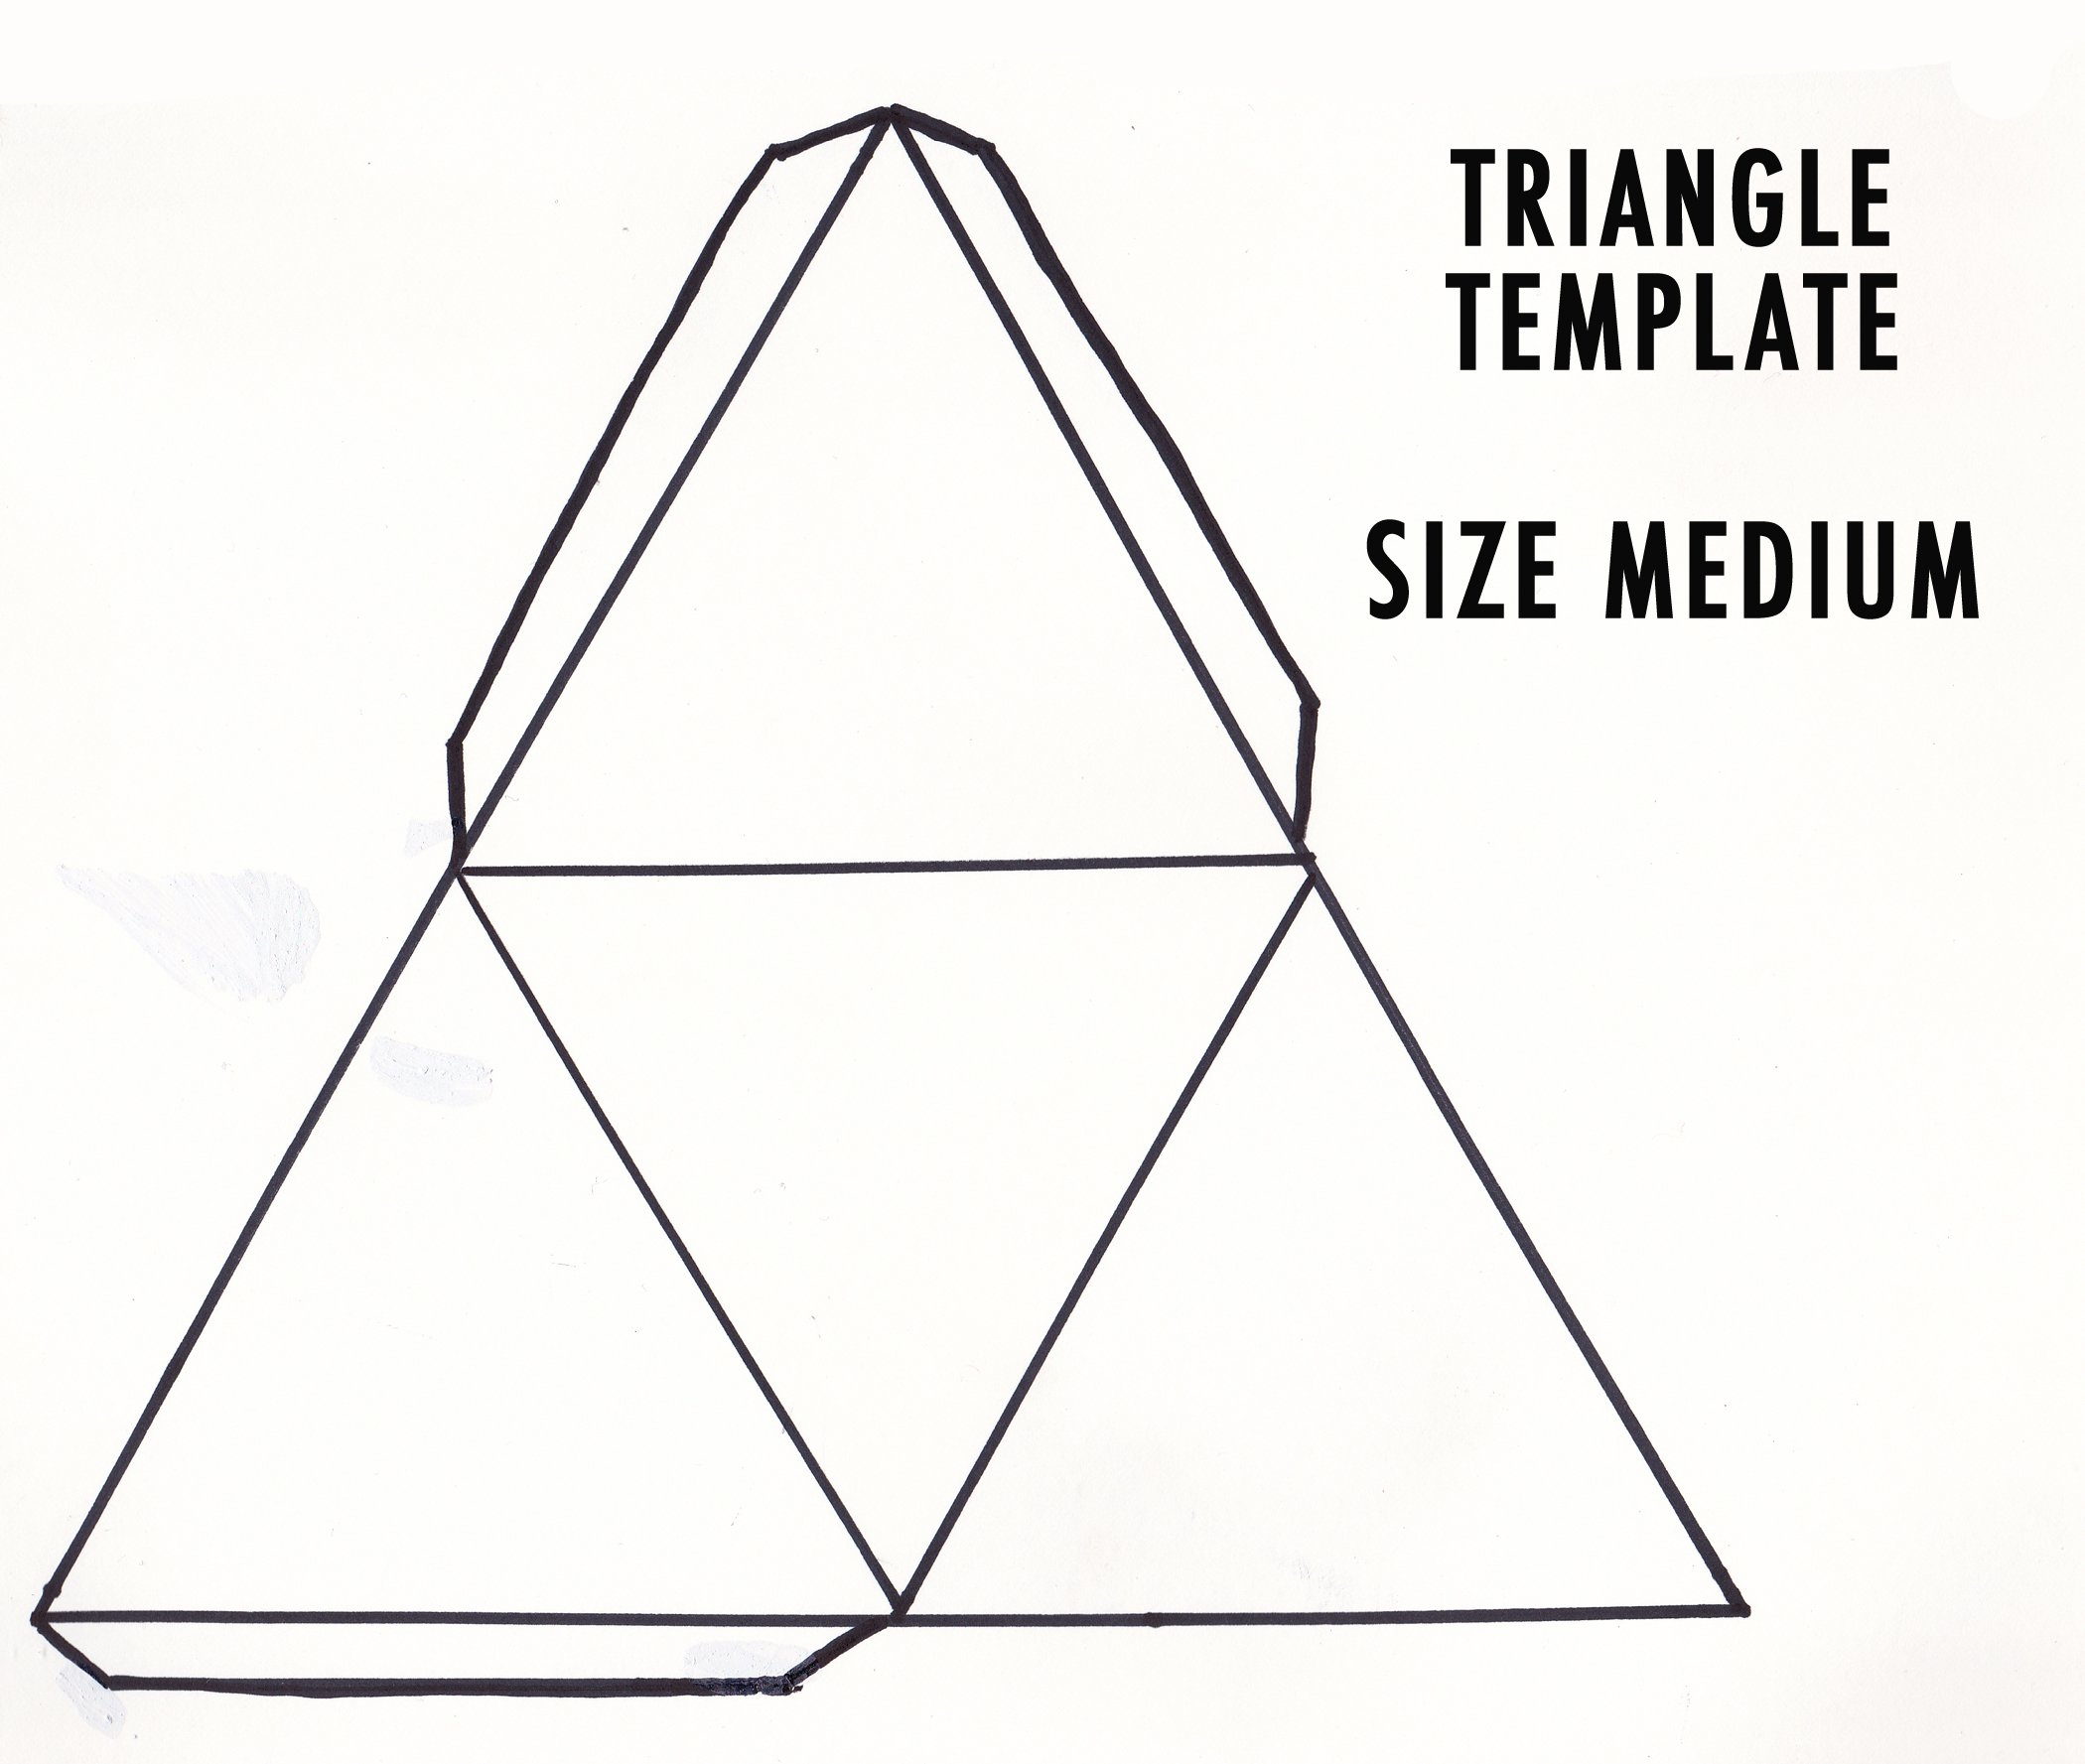 5 Best Images of Make 3D Shapes Printable Templates - 3D Geometric ...